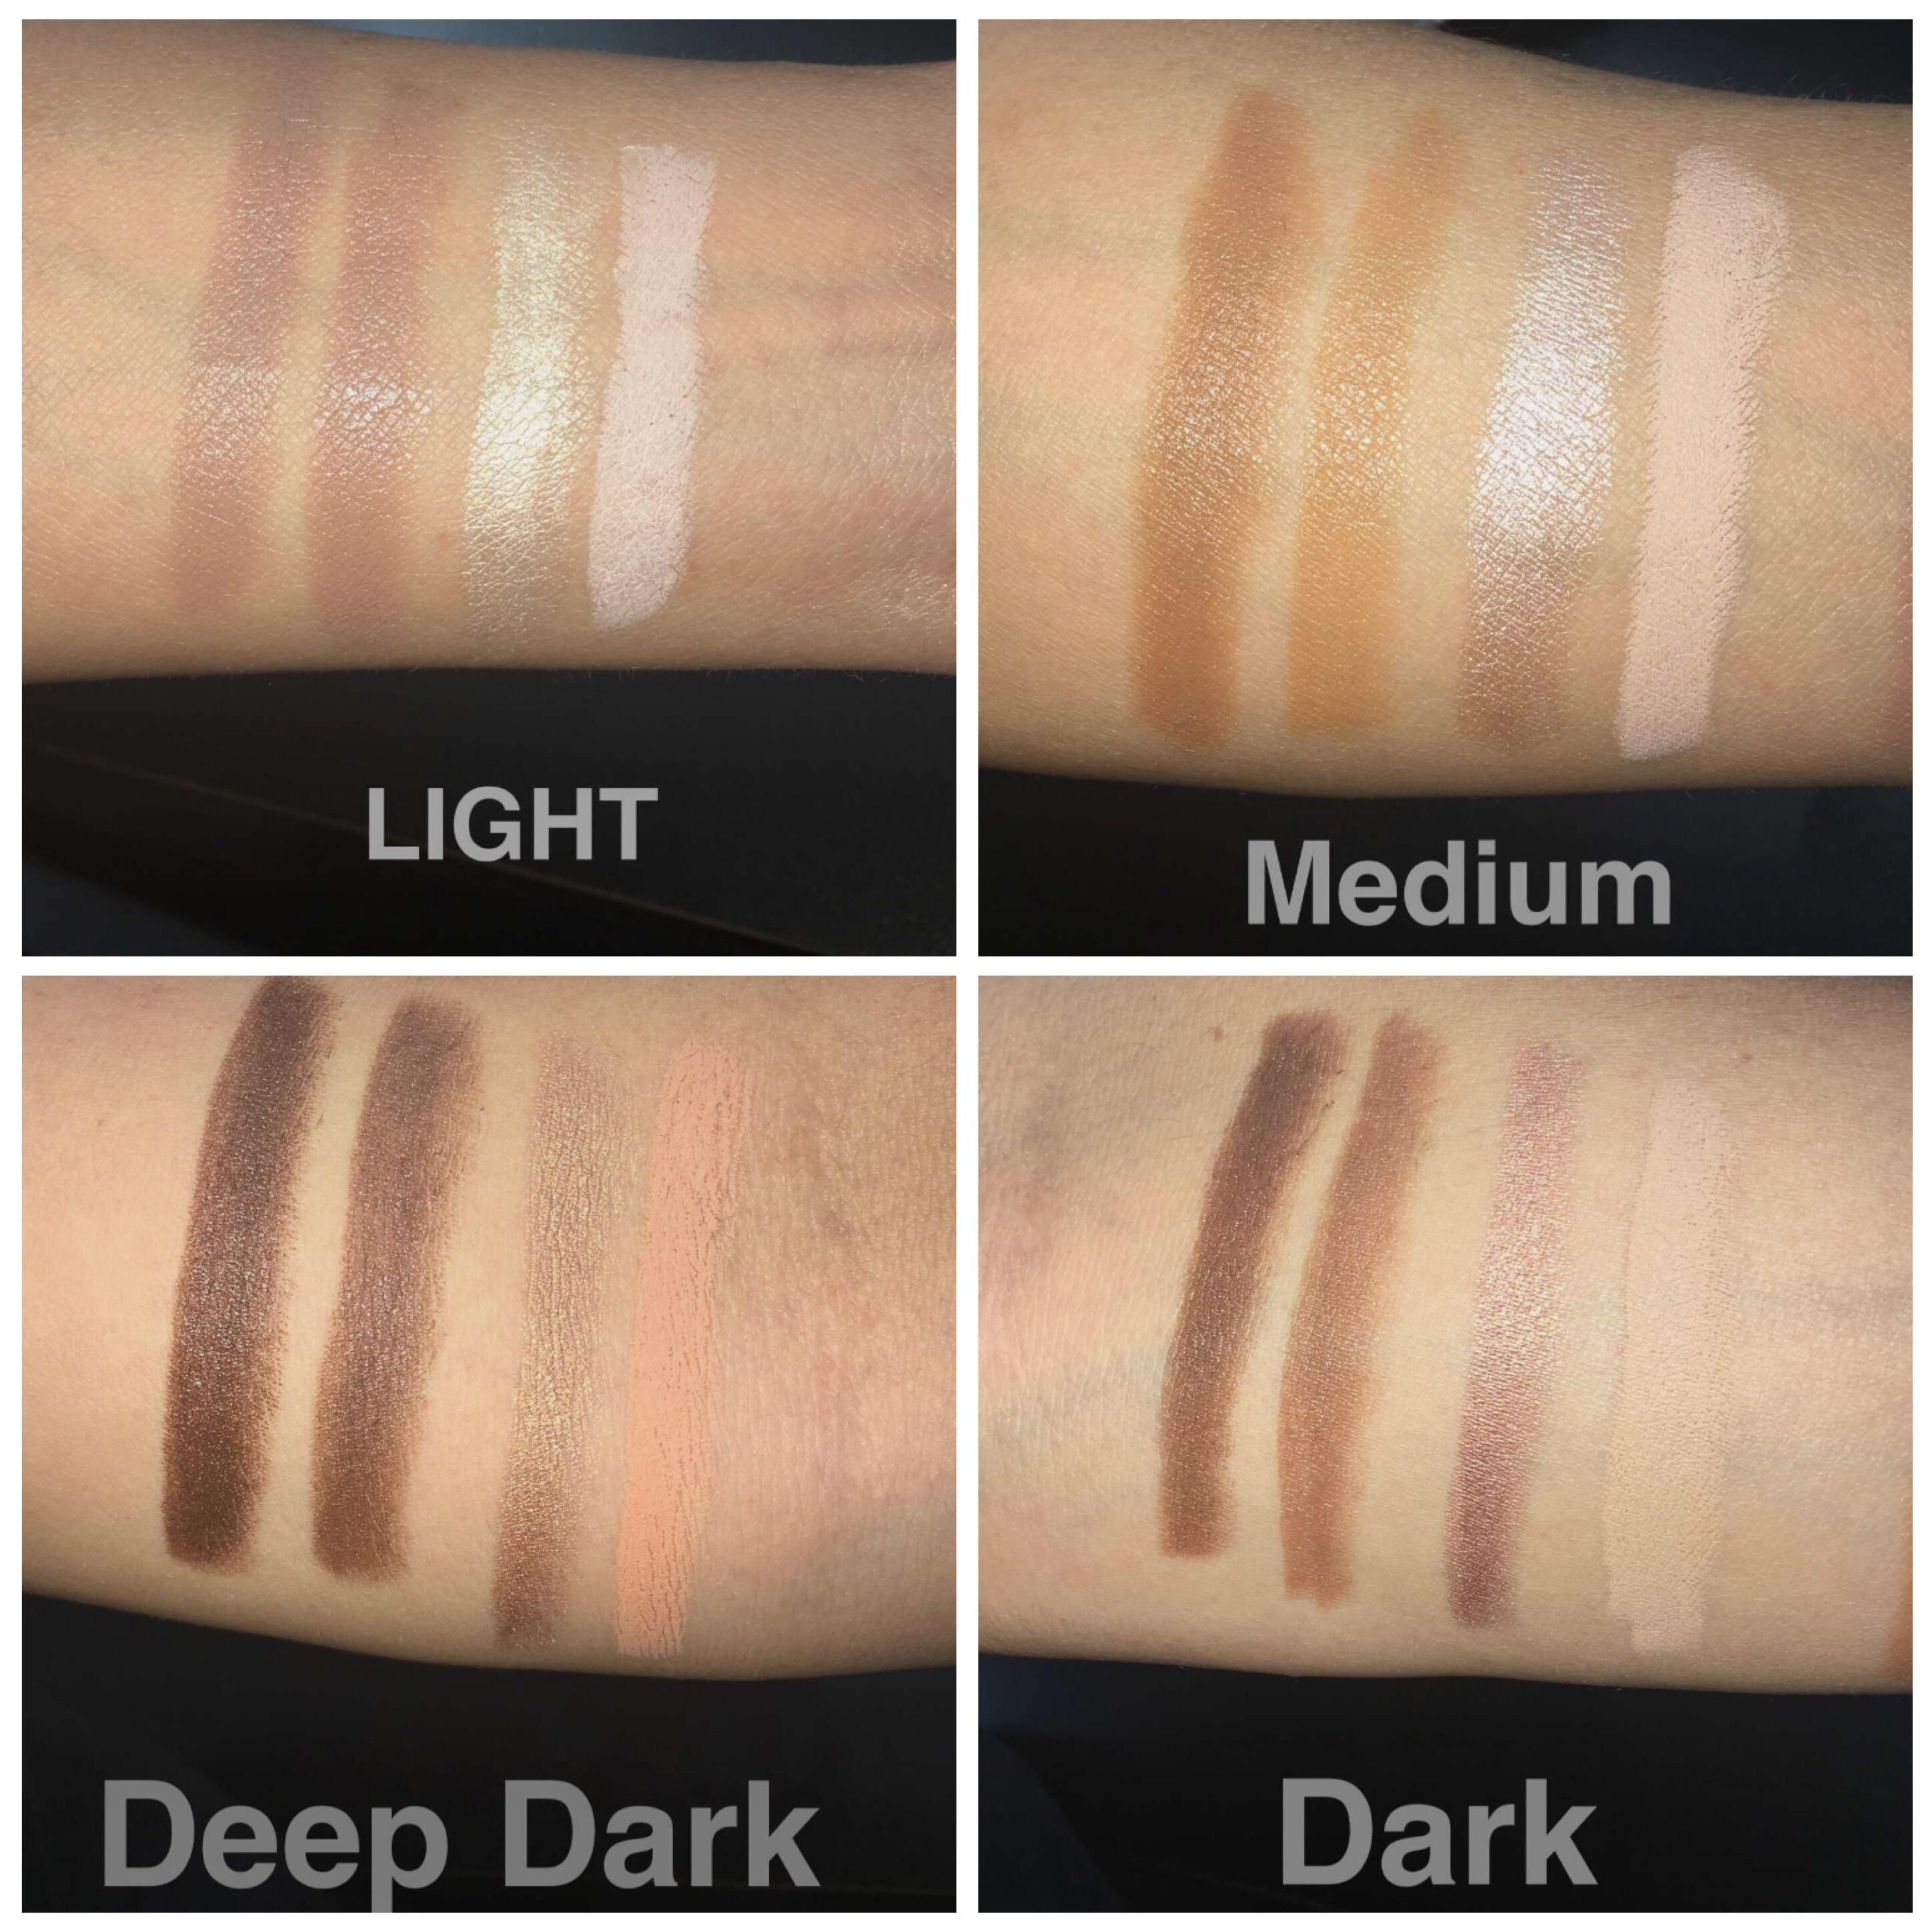 Kkw Highlight And Contour Kit Swatches The Light Is My Fave